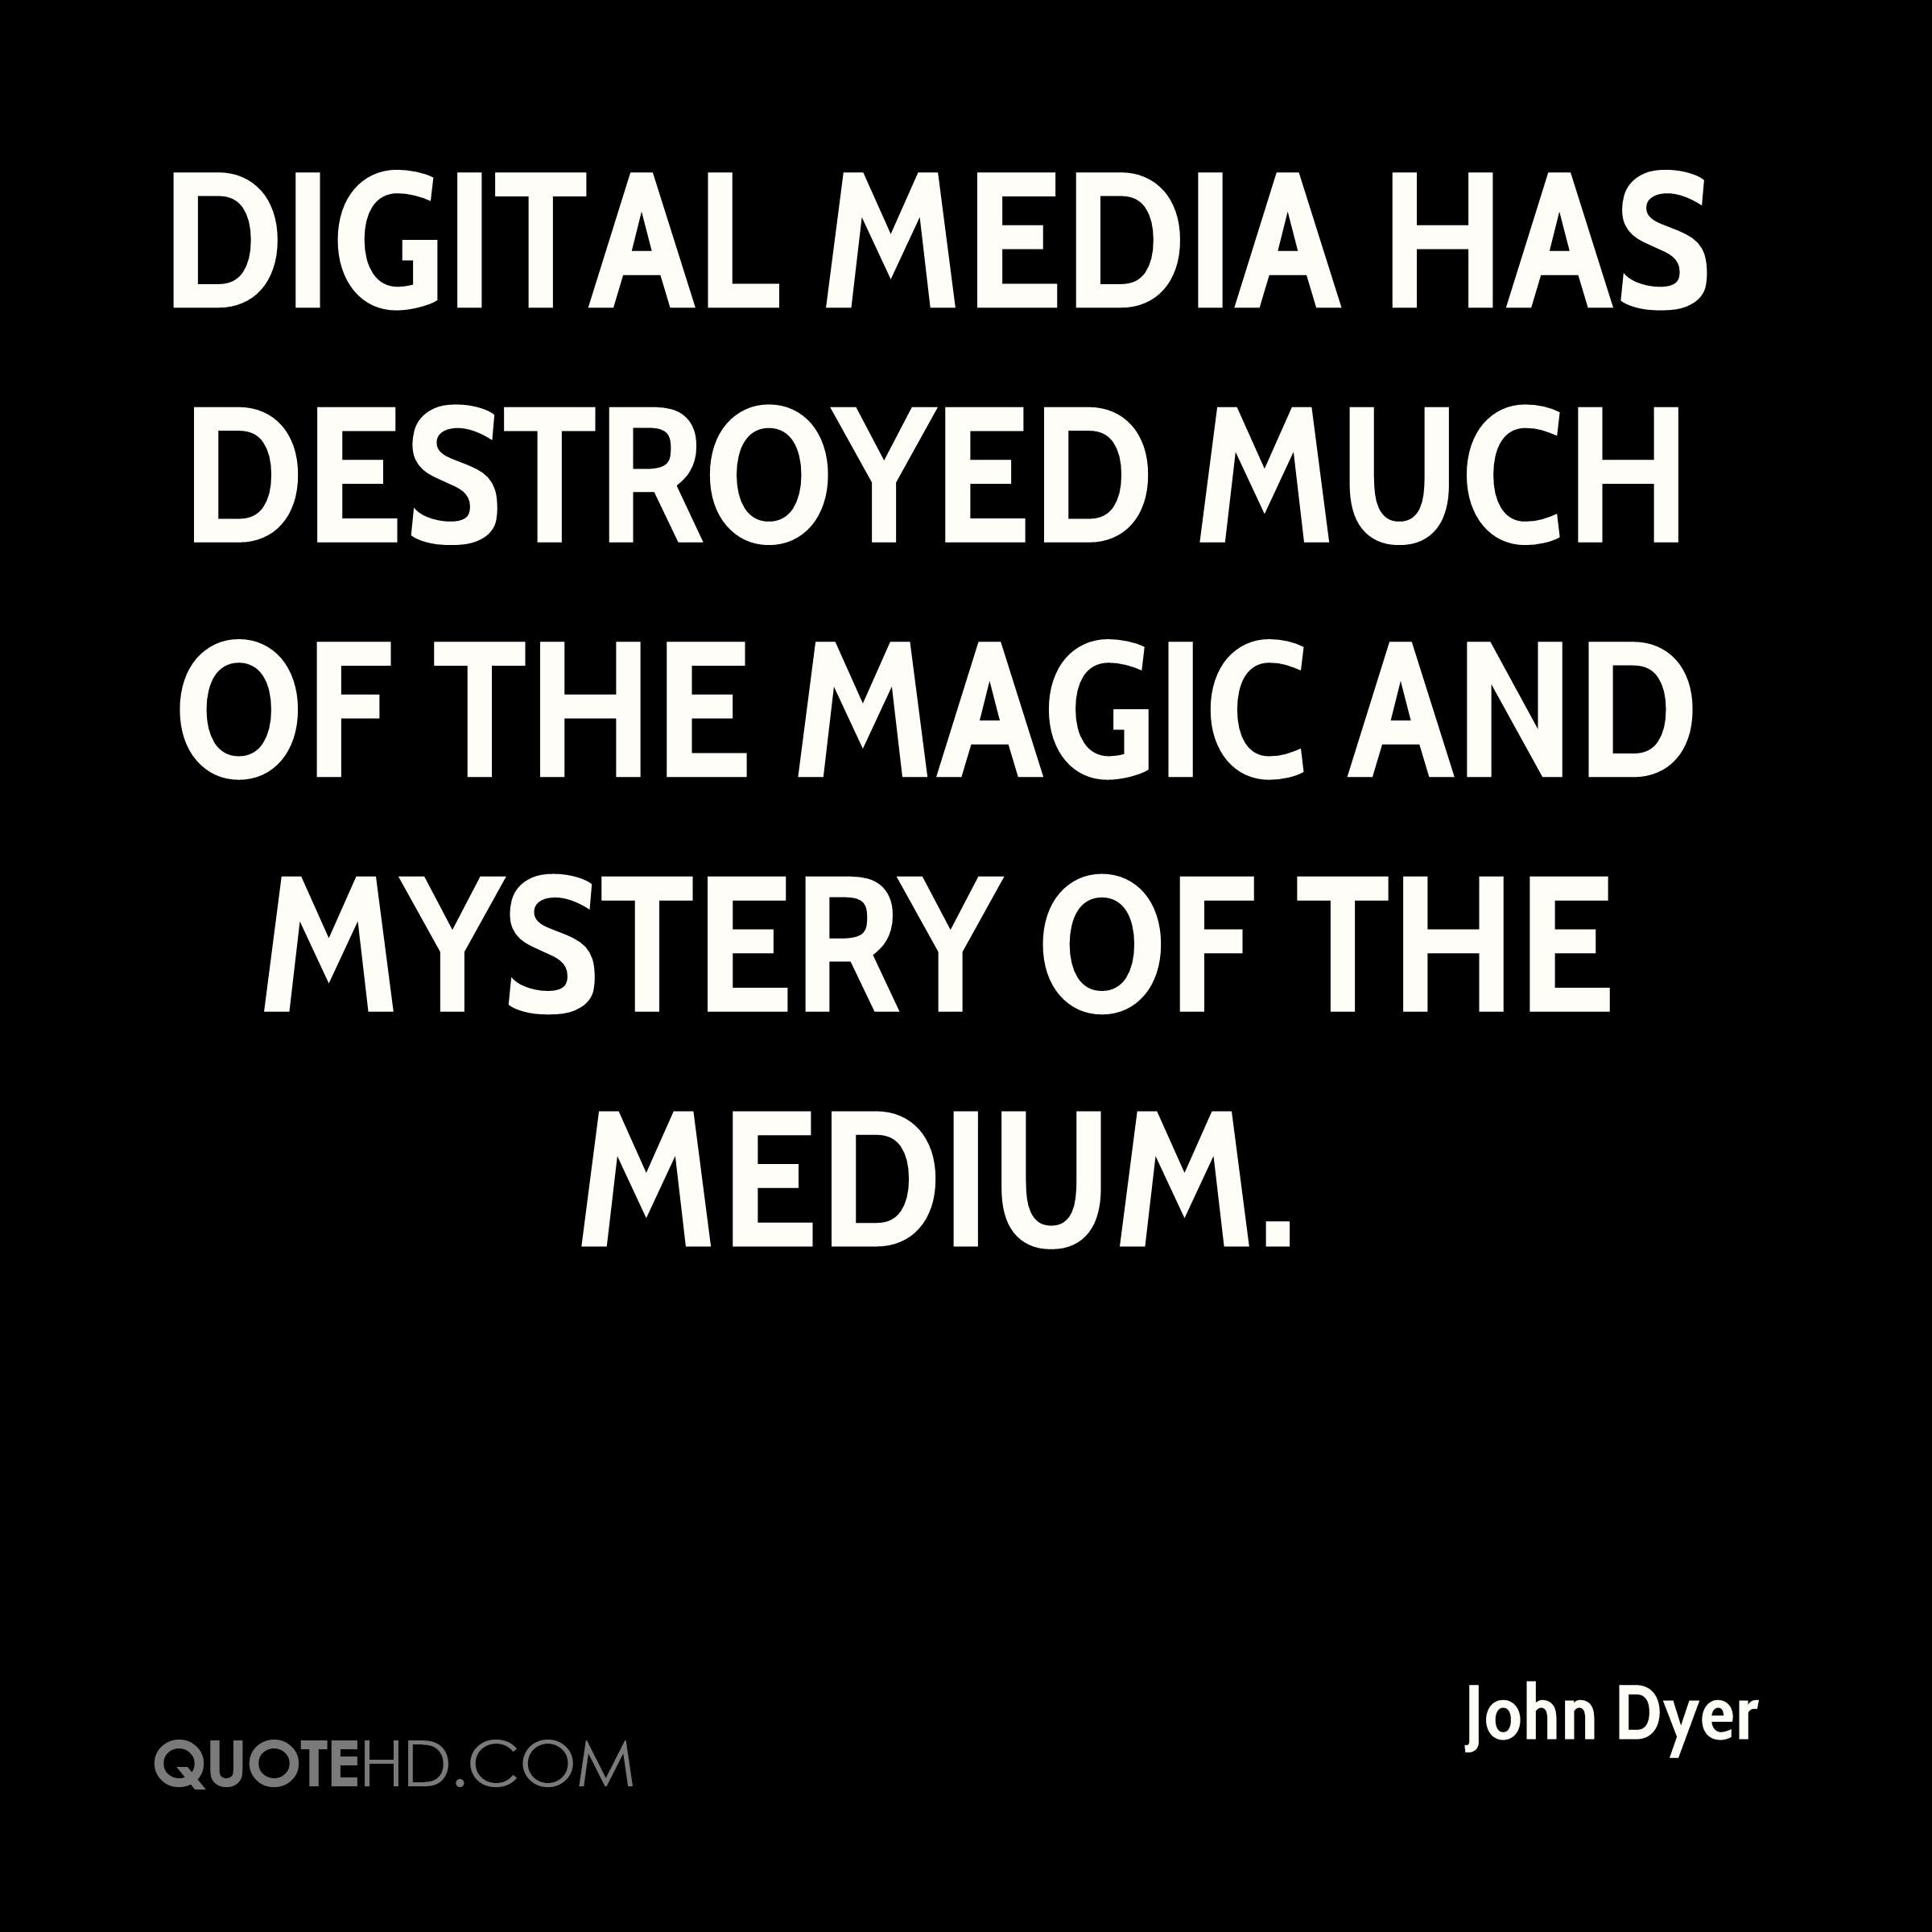 Digital media has destroyed much of the magic and mystery of the medium.